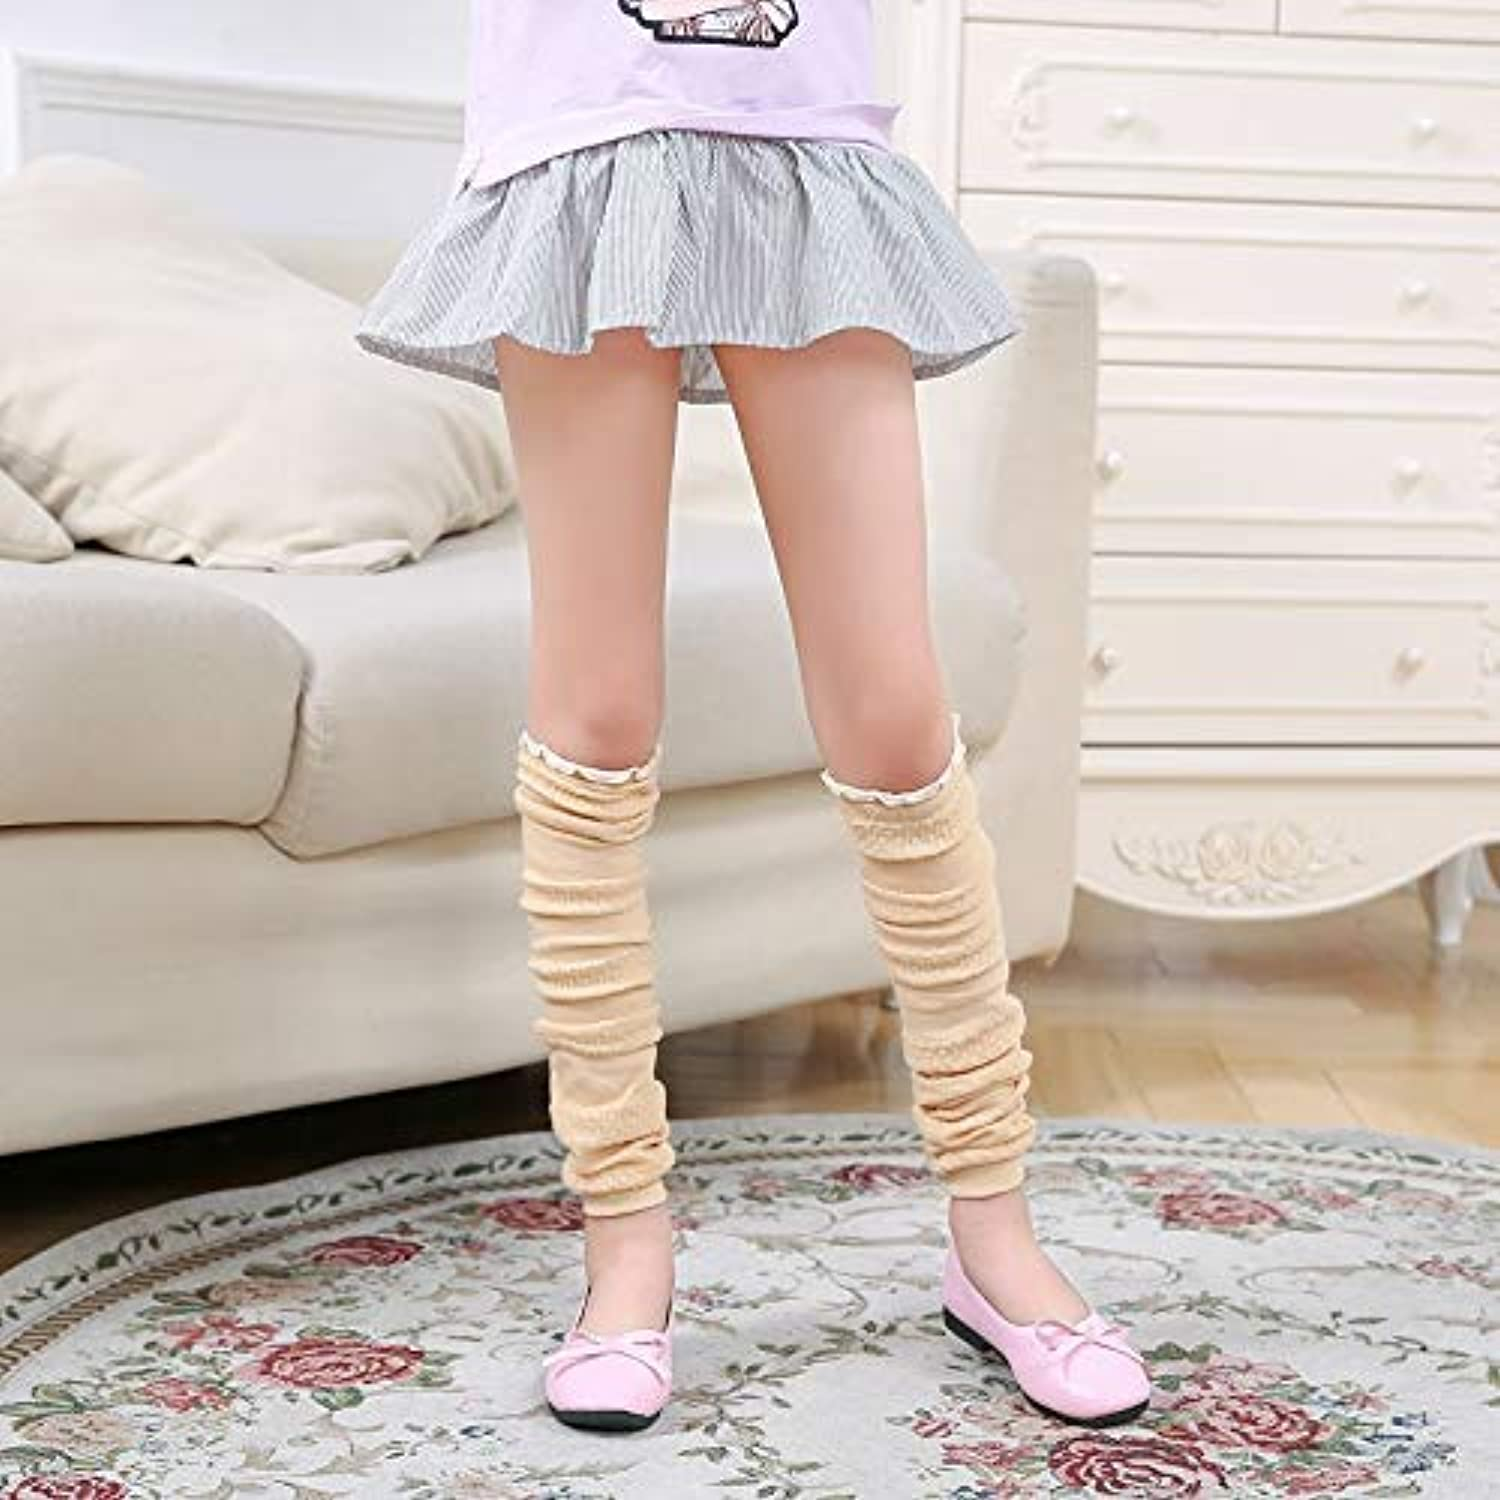 Winter Women Girls Knee Socks, Insect Bites, Leg Predection, Over The Knee, Sun Predection, air Conditioning, Warm (color   Beige) Leg Warmers